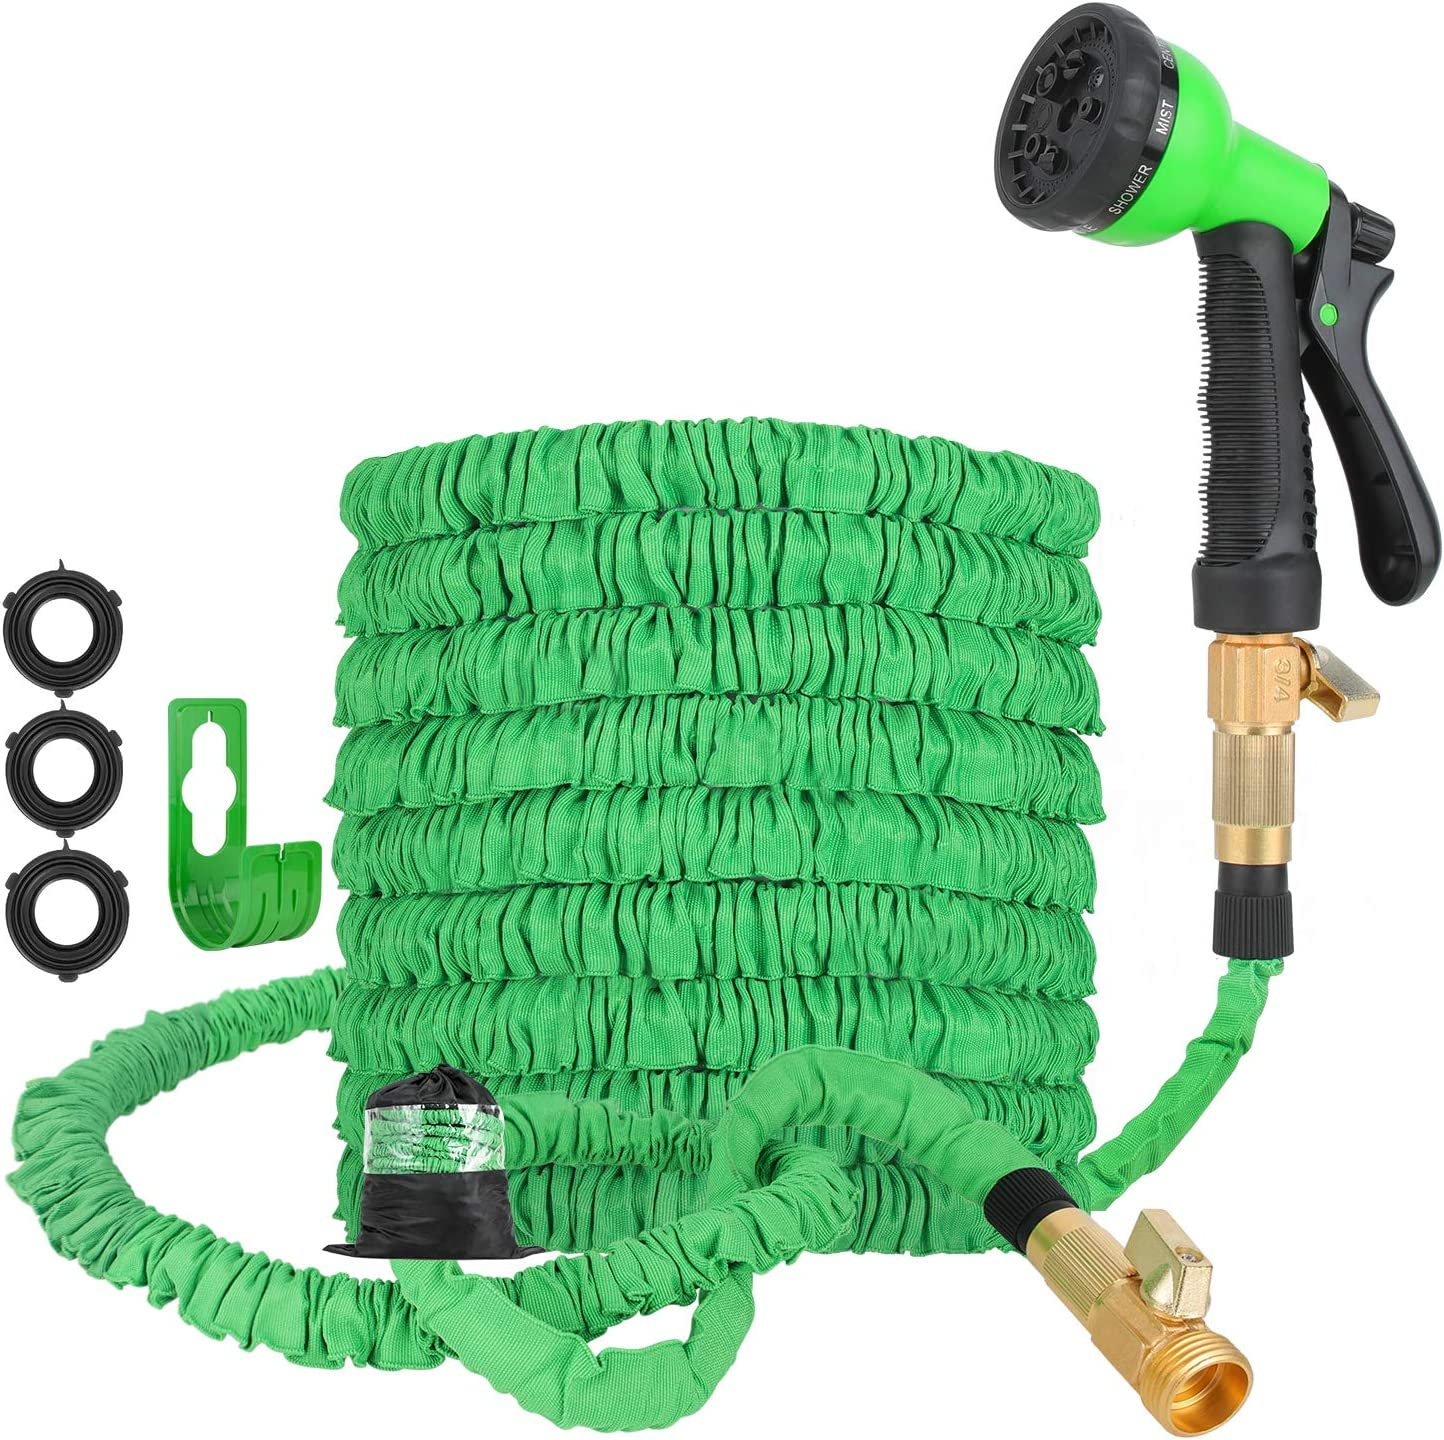 Expandable Garden Hose 100FT, Magic Expanding 3 Times Water Hose with 3/4